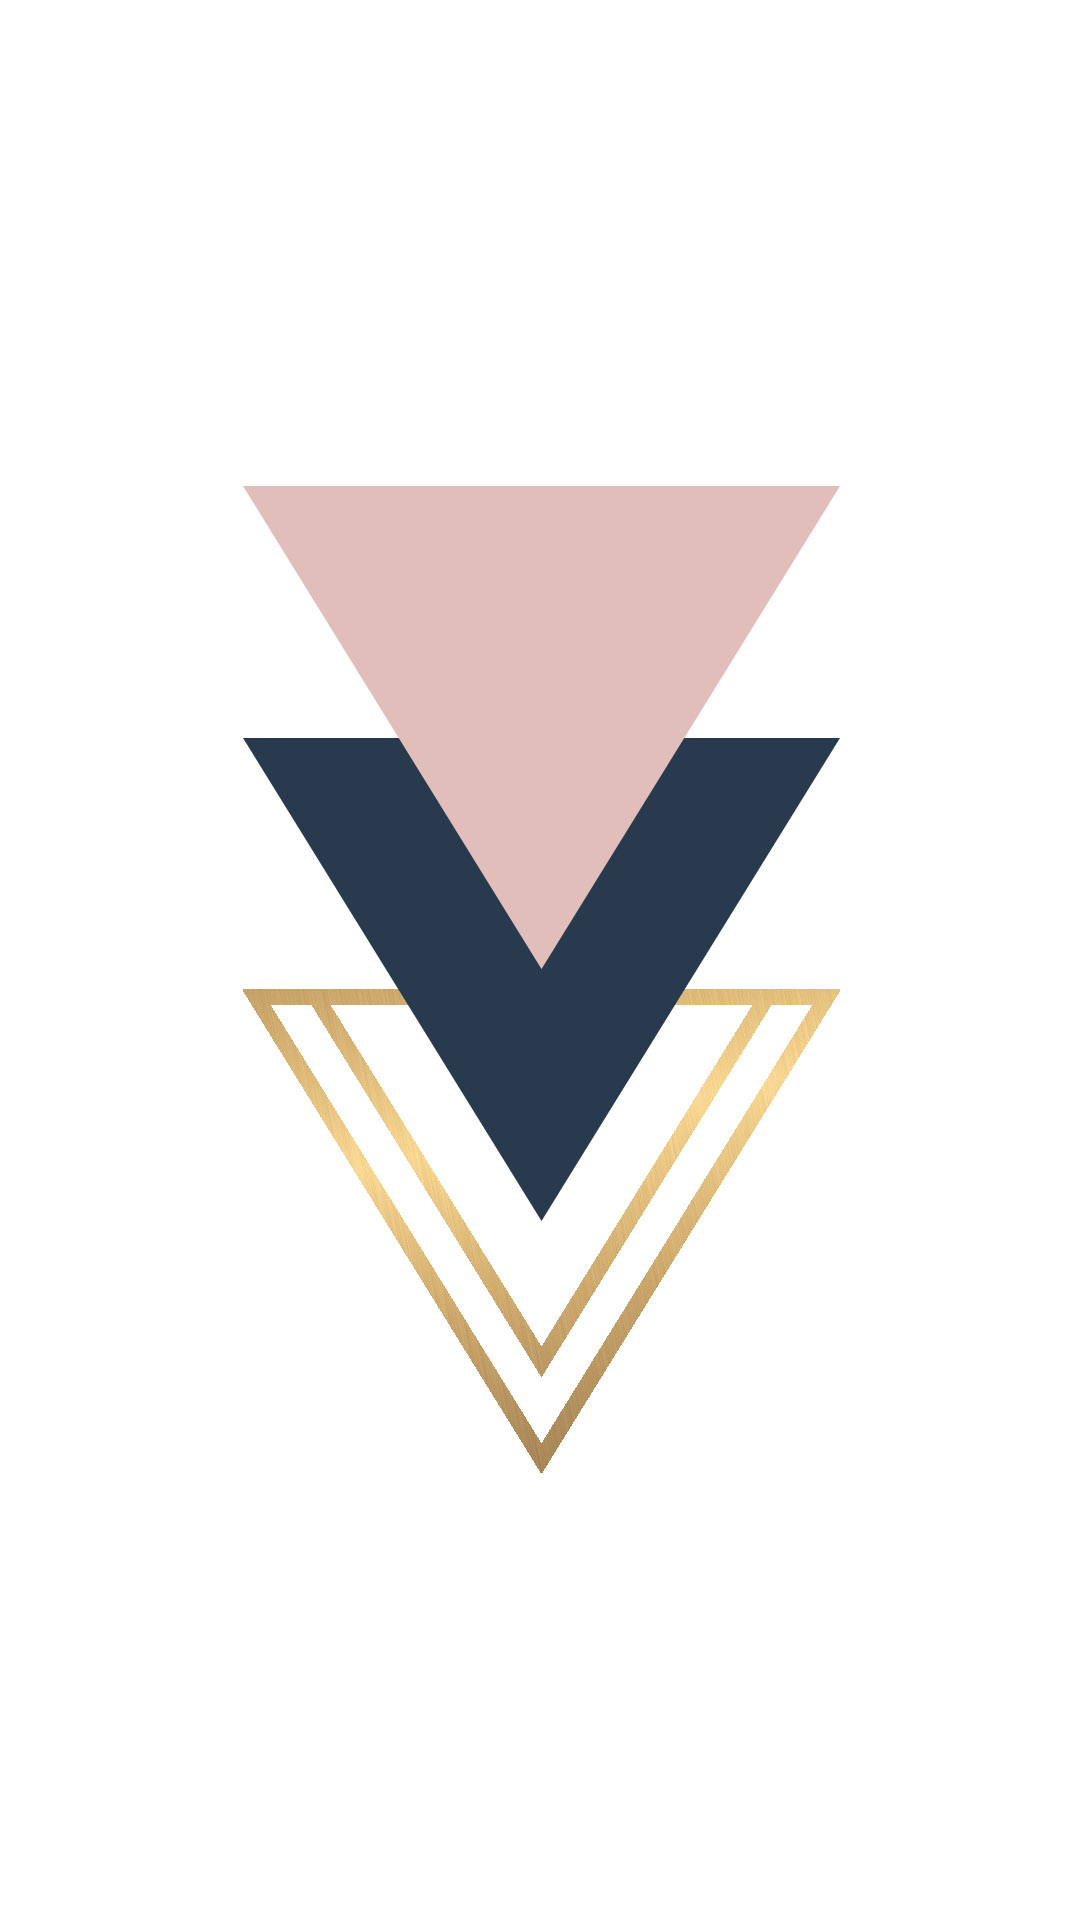 Blush-Navy-gold-foil-triangle-geo-shapes-you-can-download-for-free-on-the-blog-For-any-de-wallpaper-wp3403425